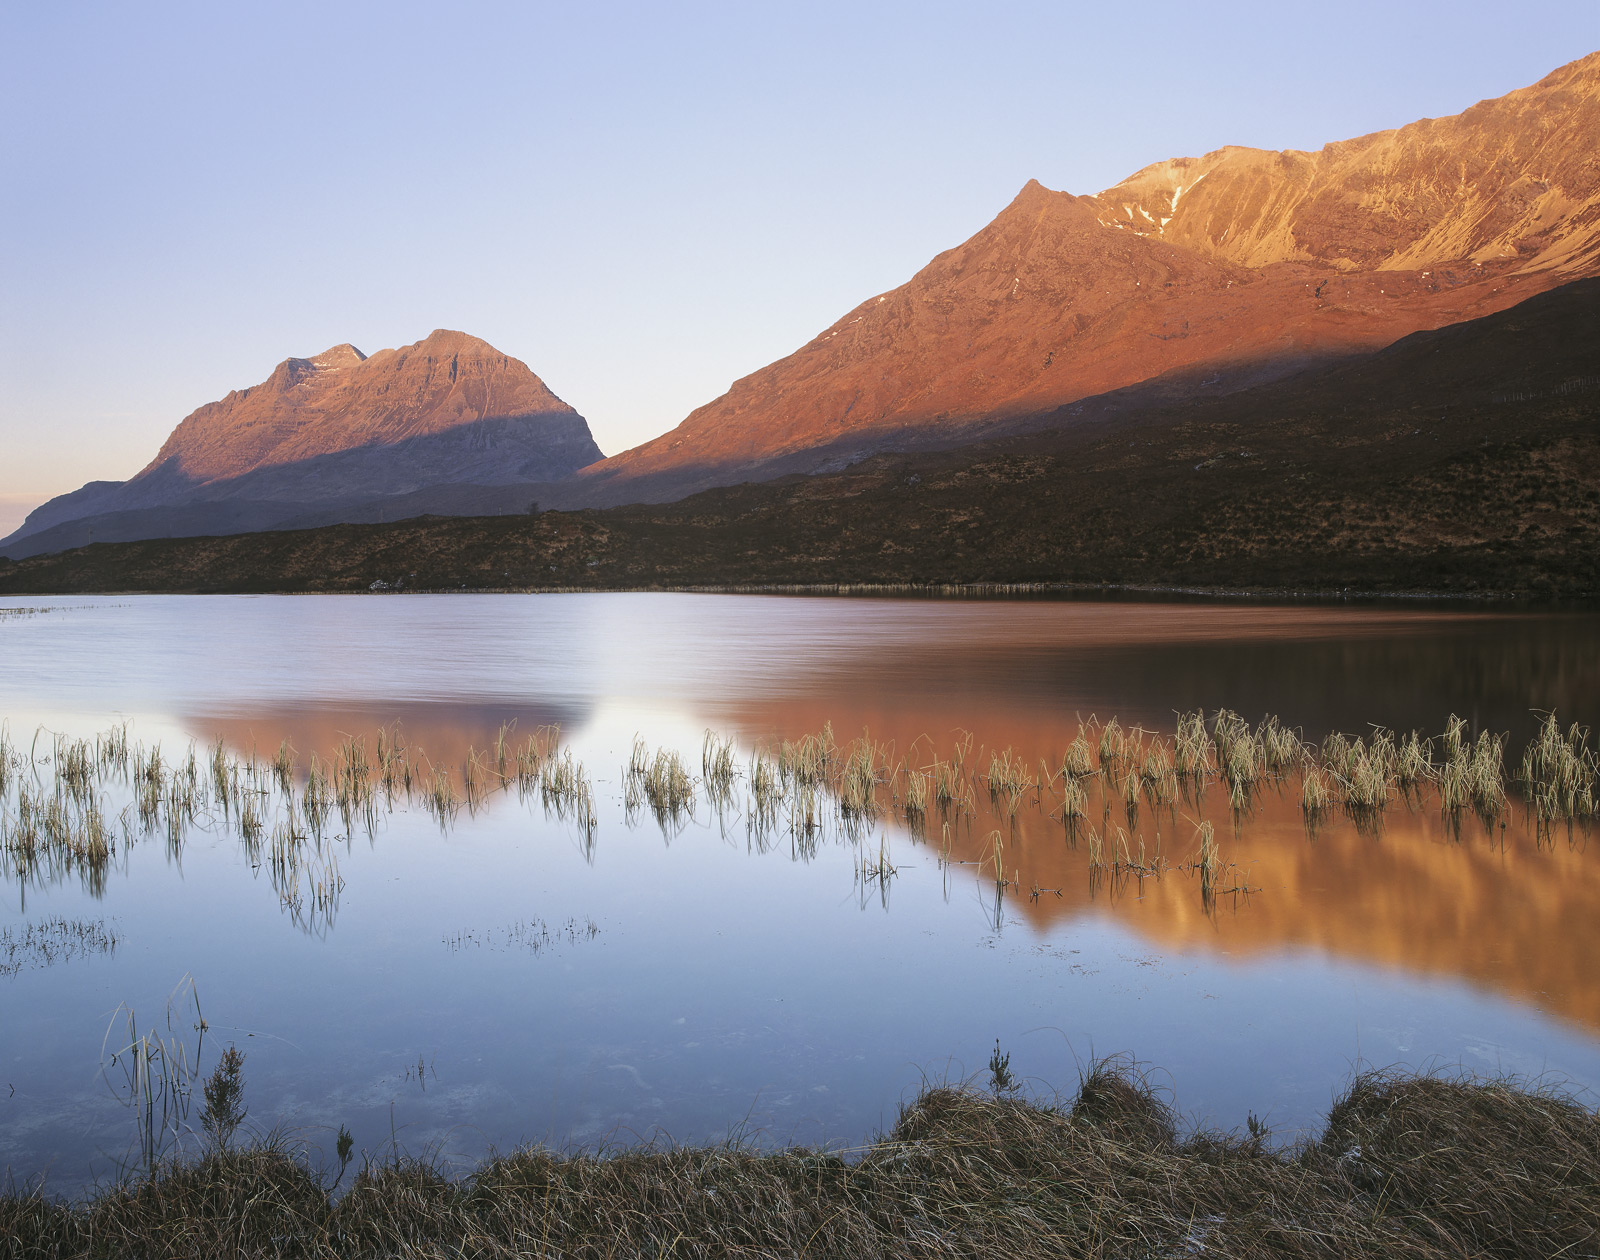 Carrot coloured early morning sunlight plays over Liathach and Beinn Eighe which in turn forms a lazy reflection in the surface...